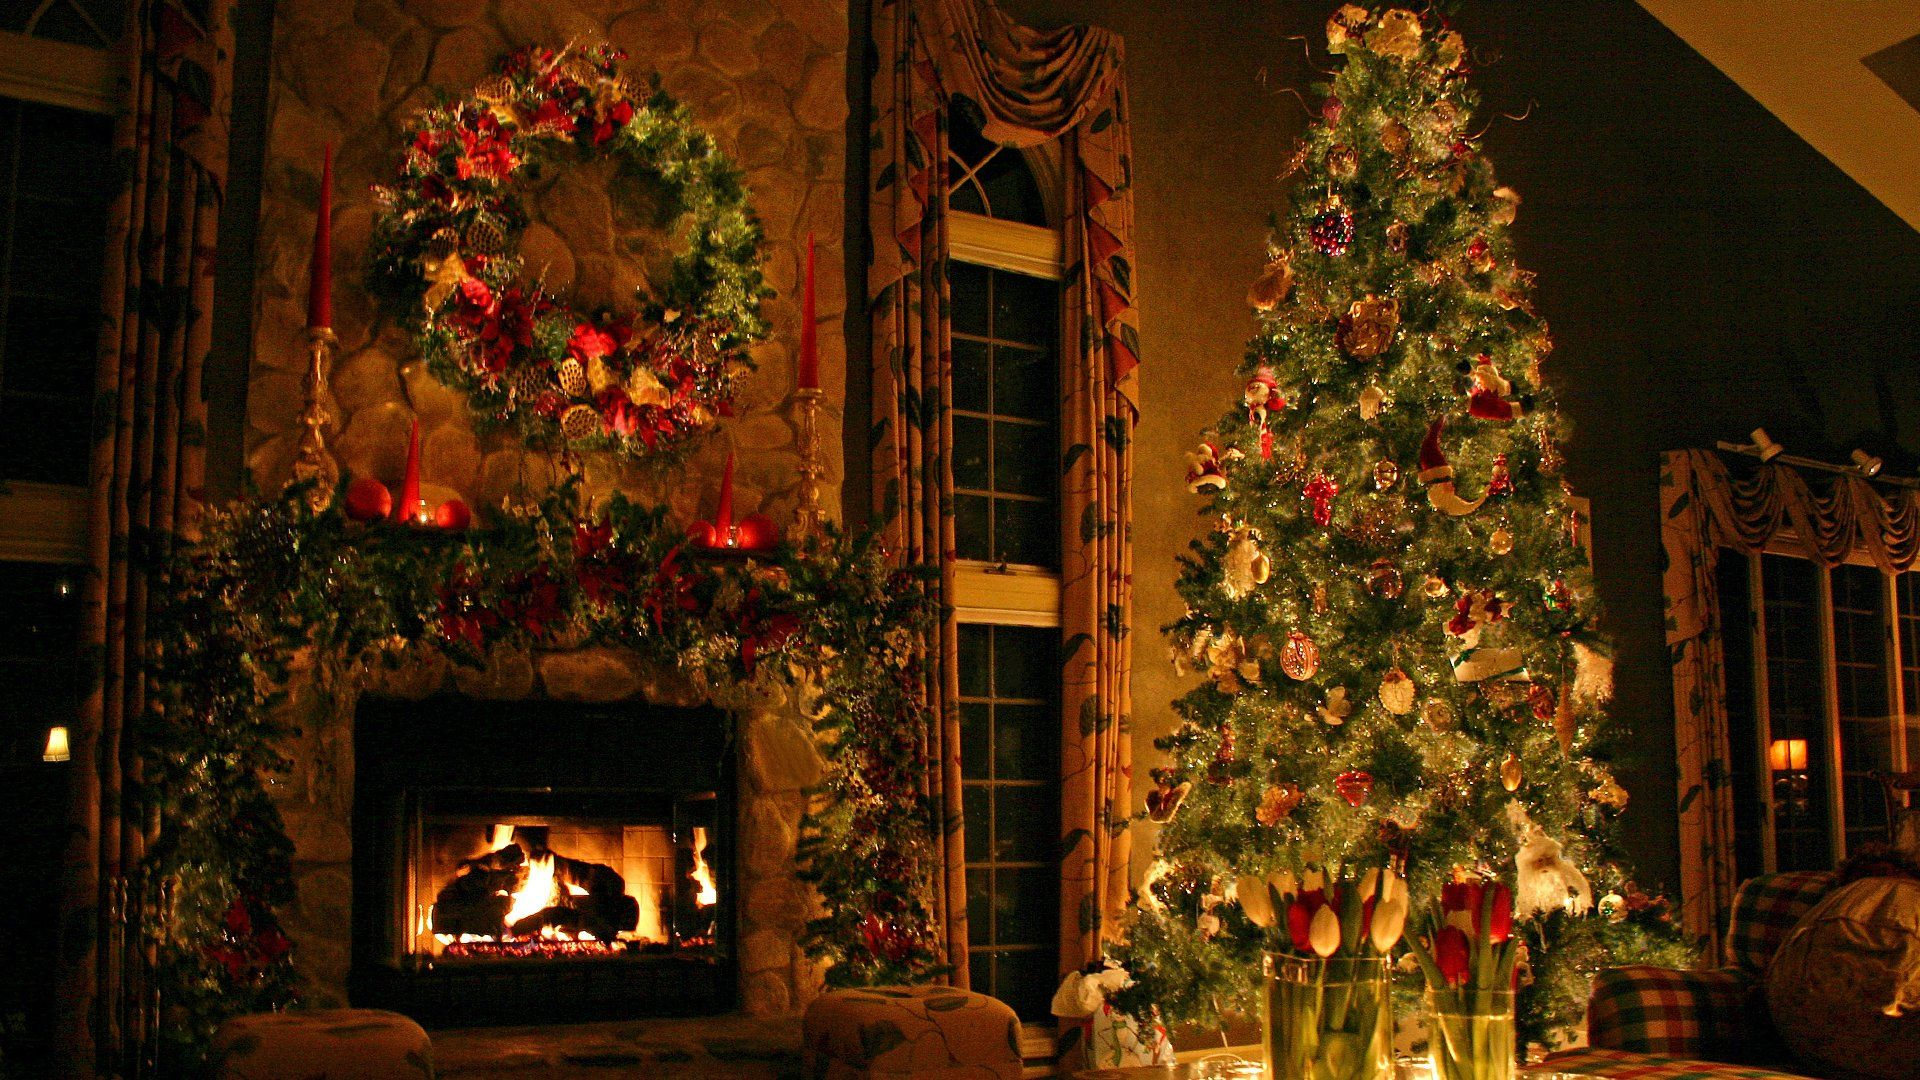 Christmas Holiday Warm Cool Wallpaper